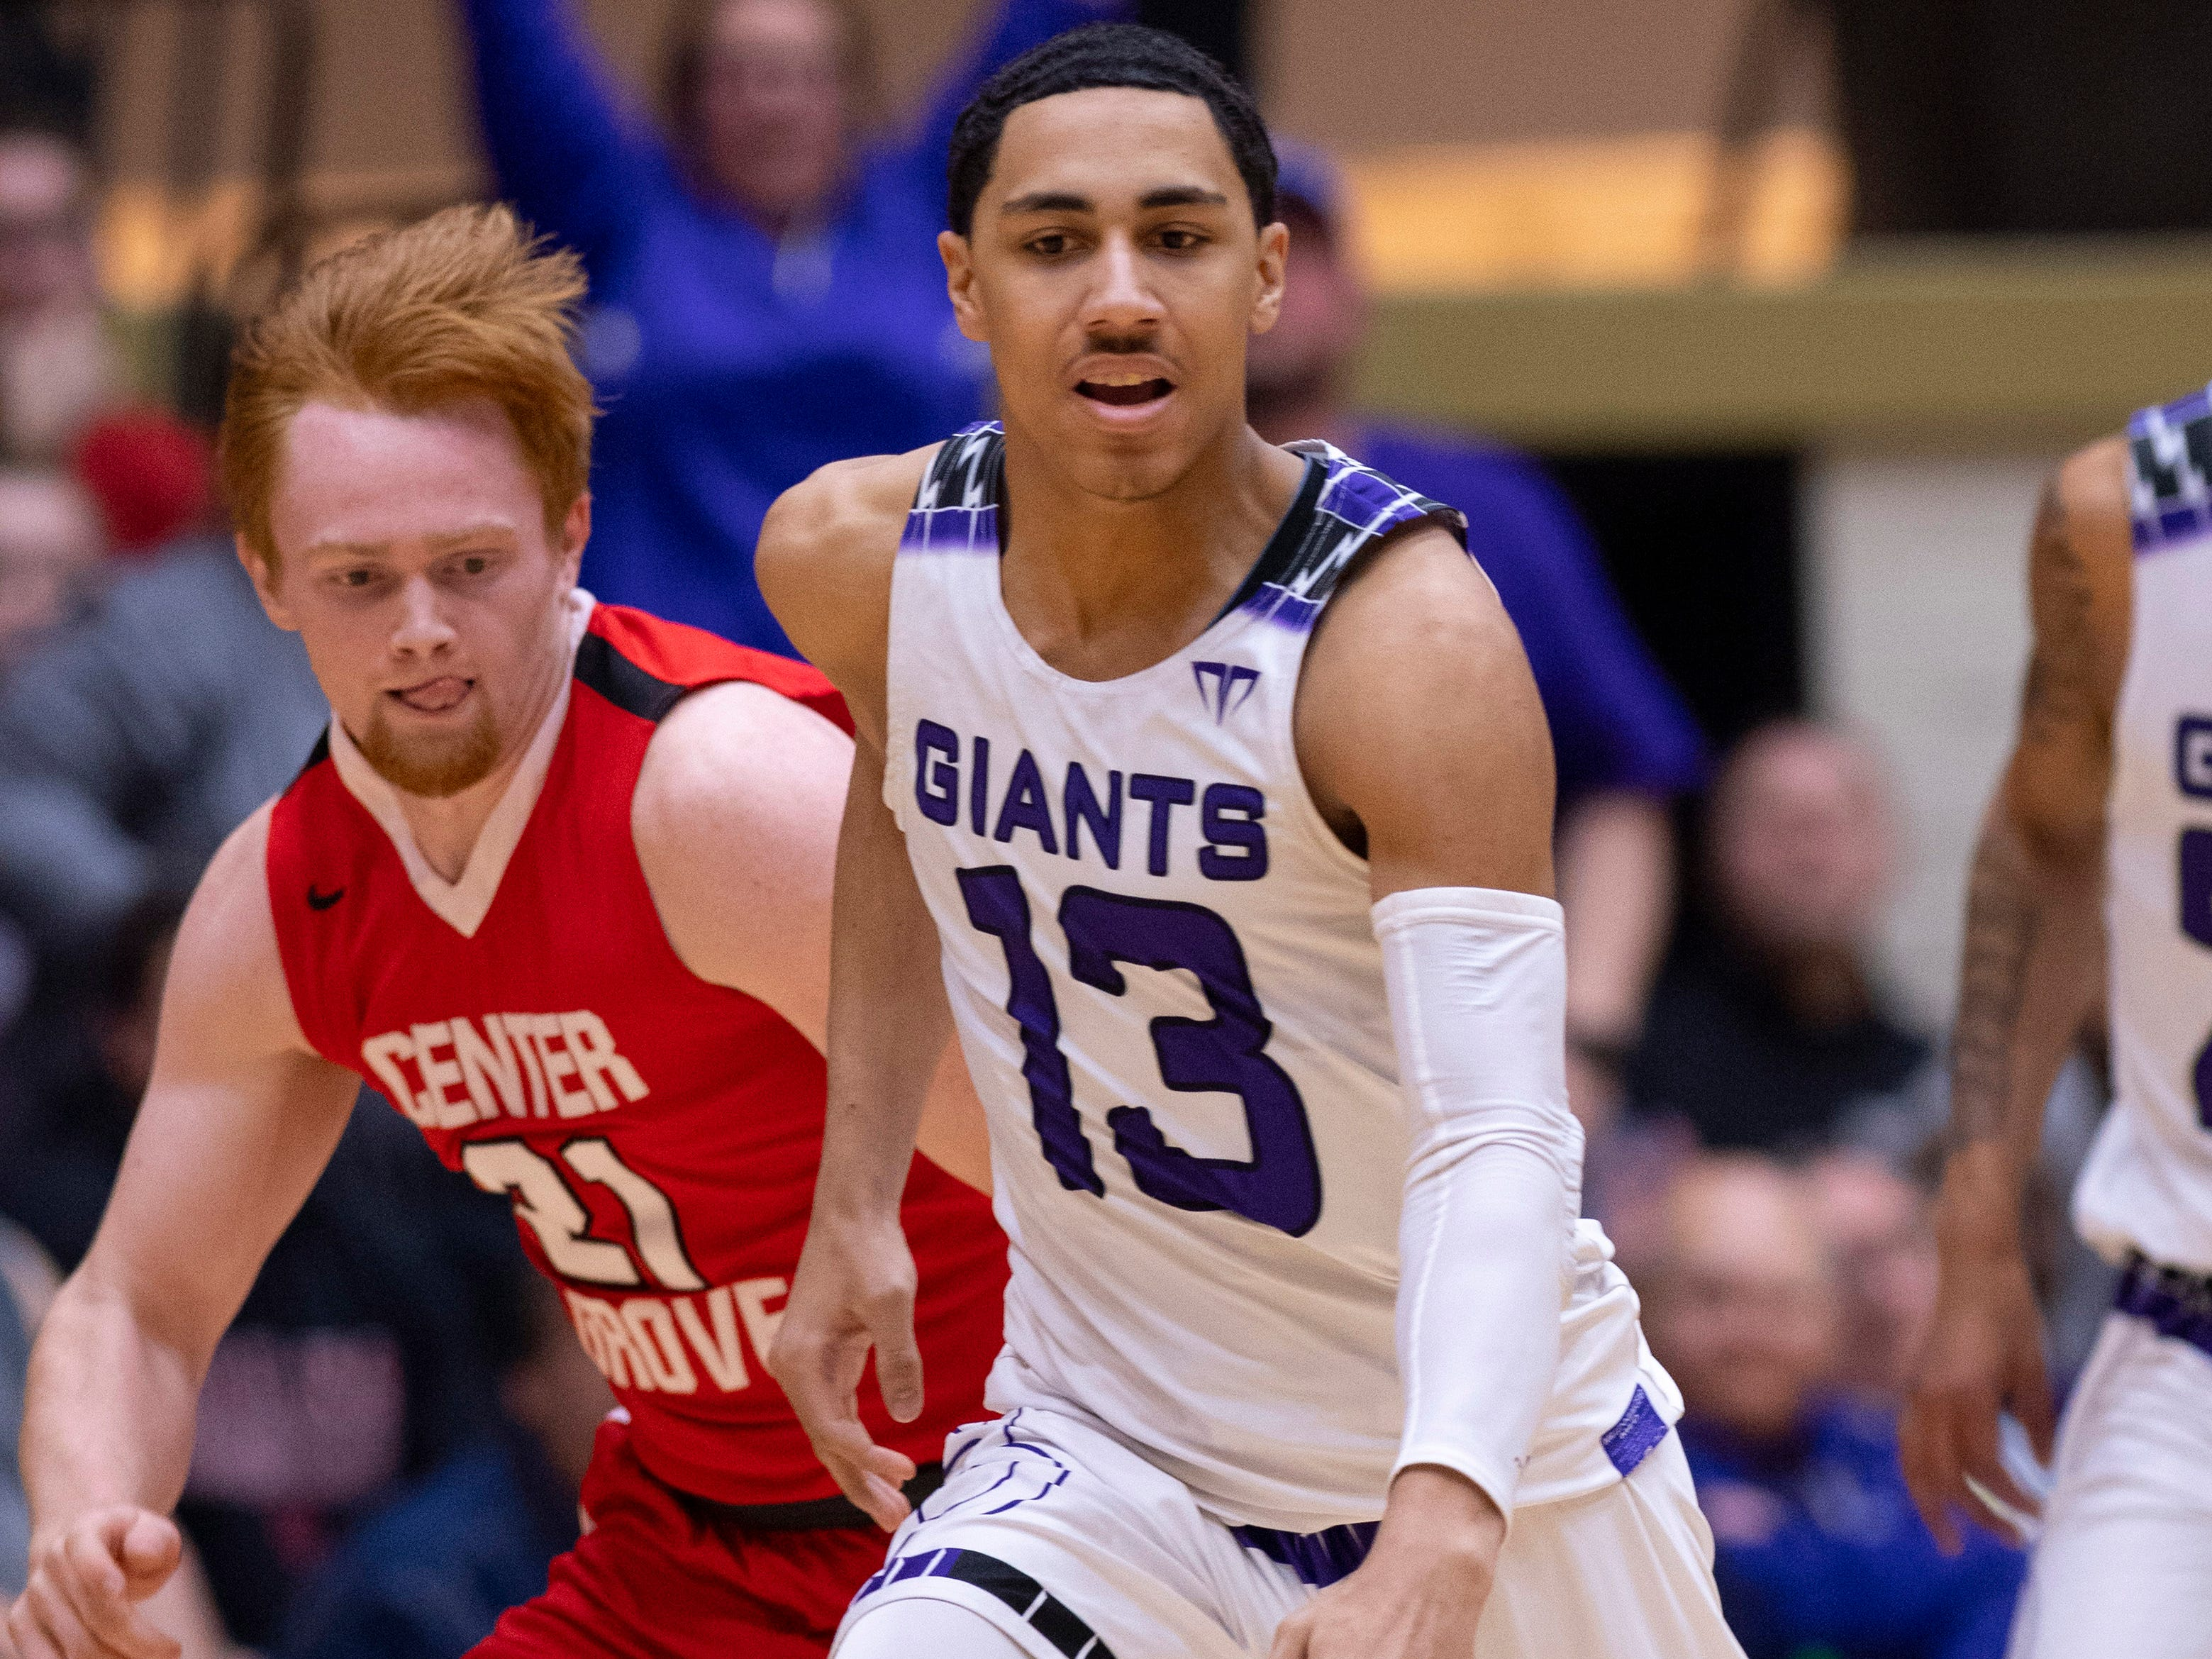 Ben Davis's Kai Hickman-Steinman (13) brings the ball across the timeline before getting it stripped by Center Grove's Cameron Petty (21) during the 4A Boys Indiana Semi-State Basketball Tournament at the Hatchet House in Washington, Ind., Saturday afternoon.